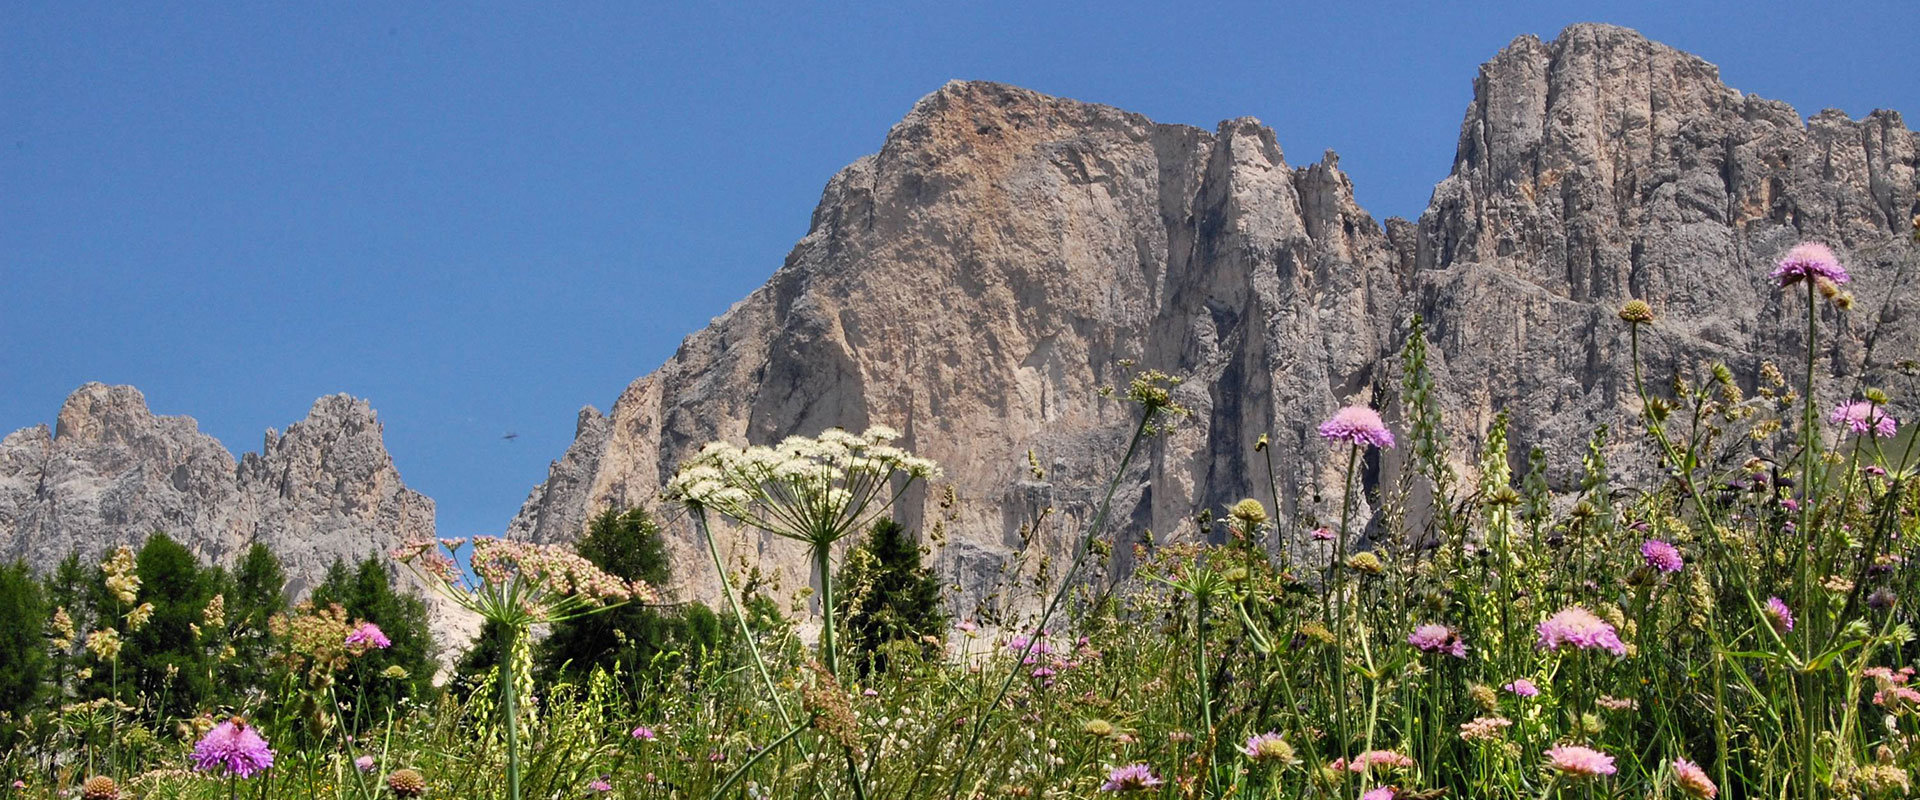 The South Tyrolean valley Val dEga in the Dolomites